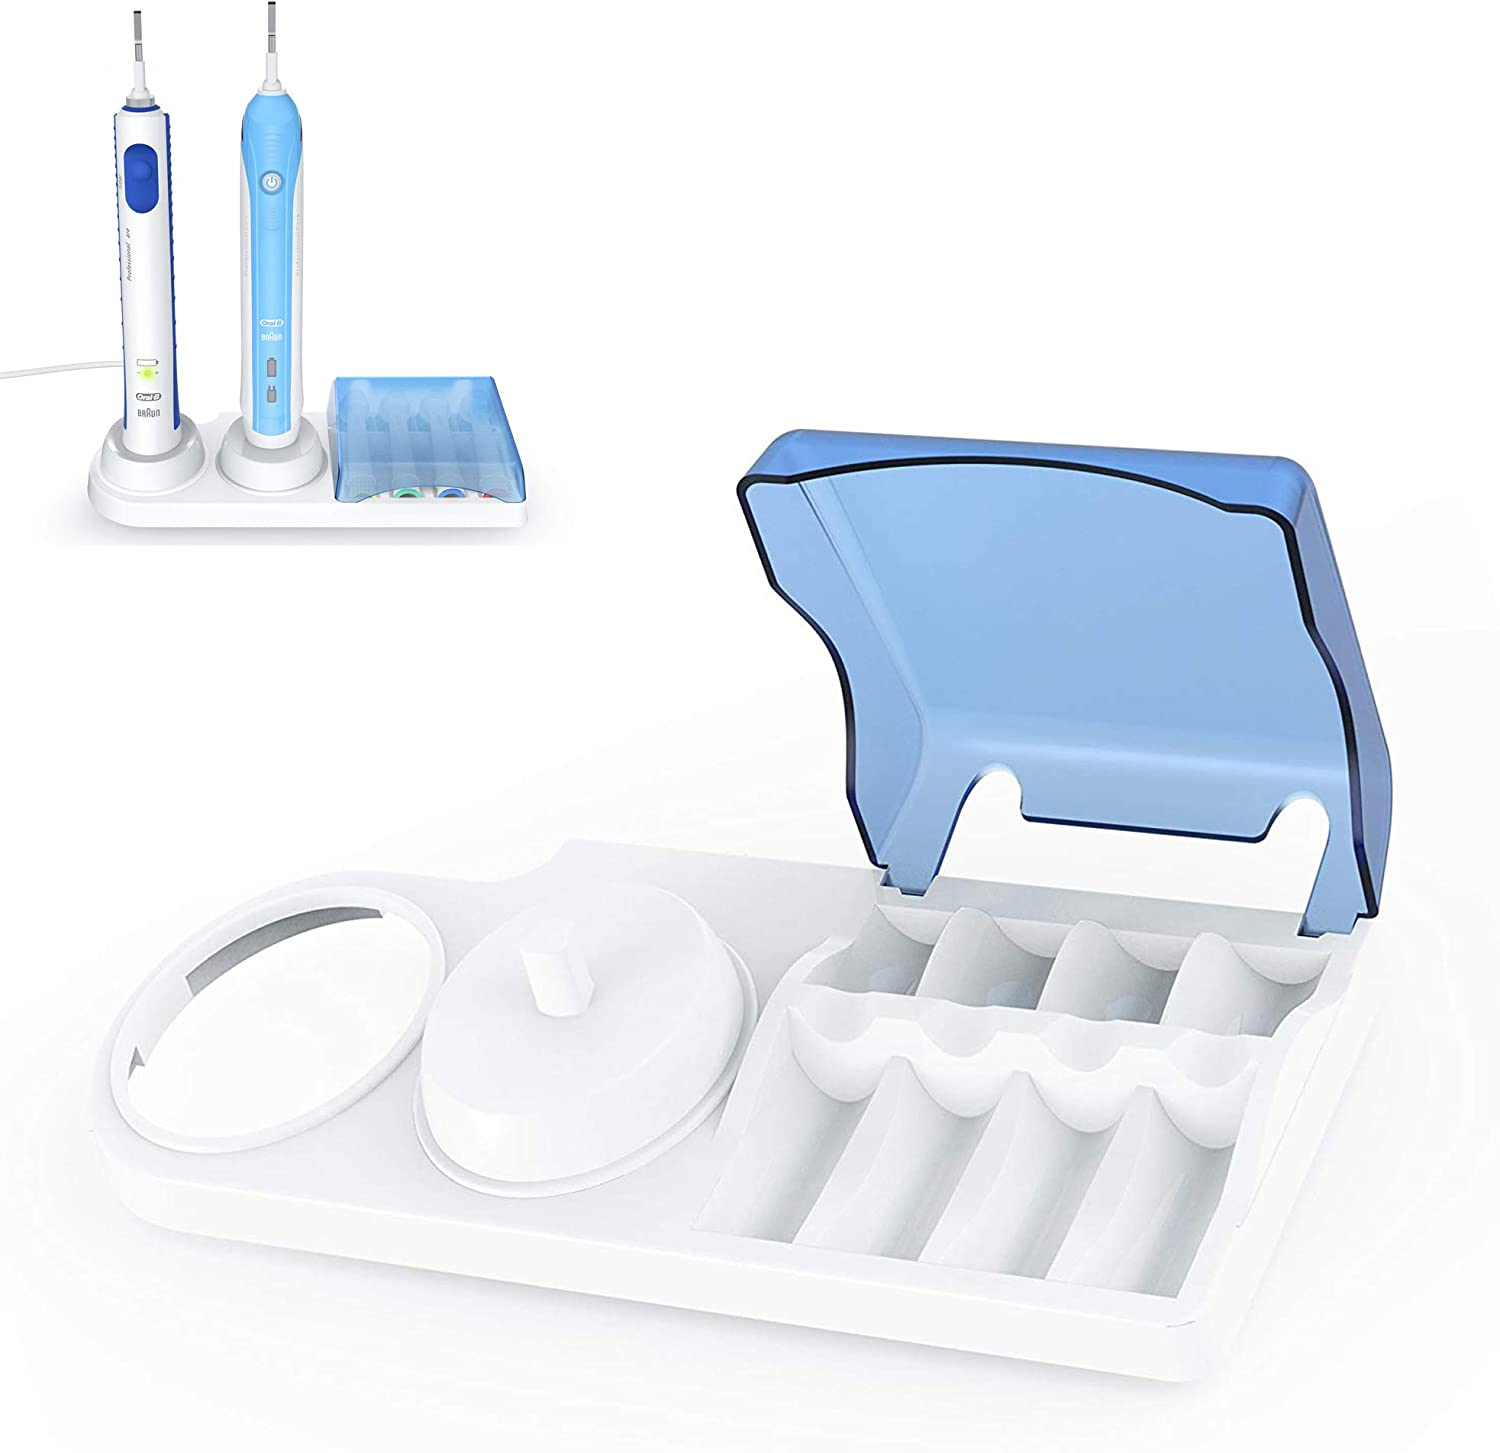 Oral B Stand Electric Toothbrush Holder Braun National 2021 uniform free shipping for Heads